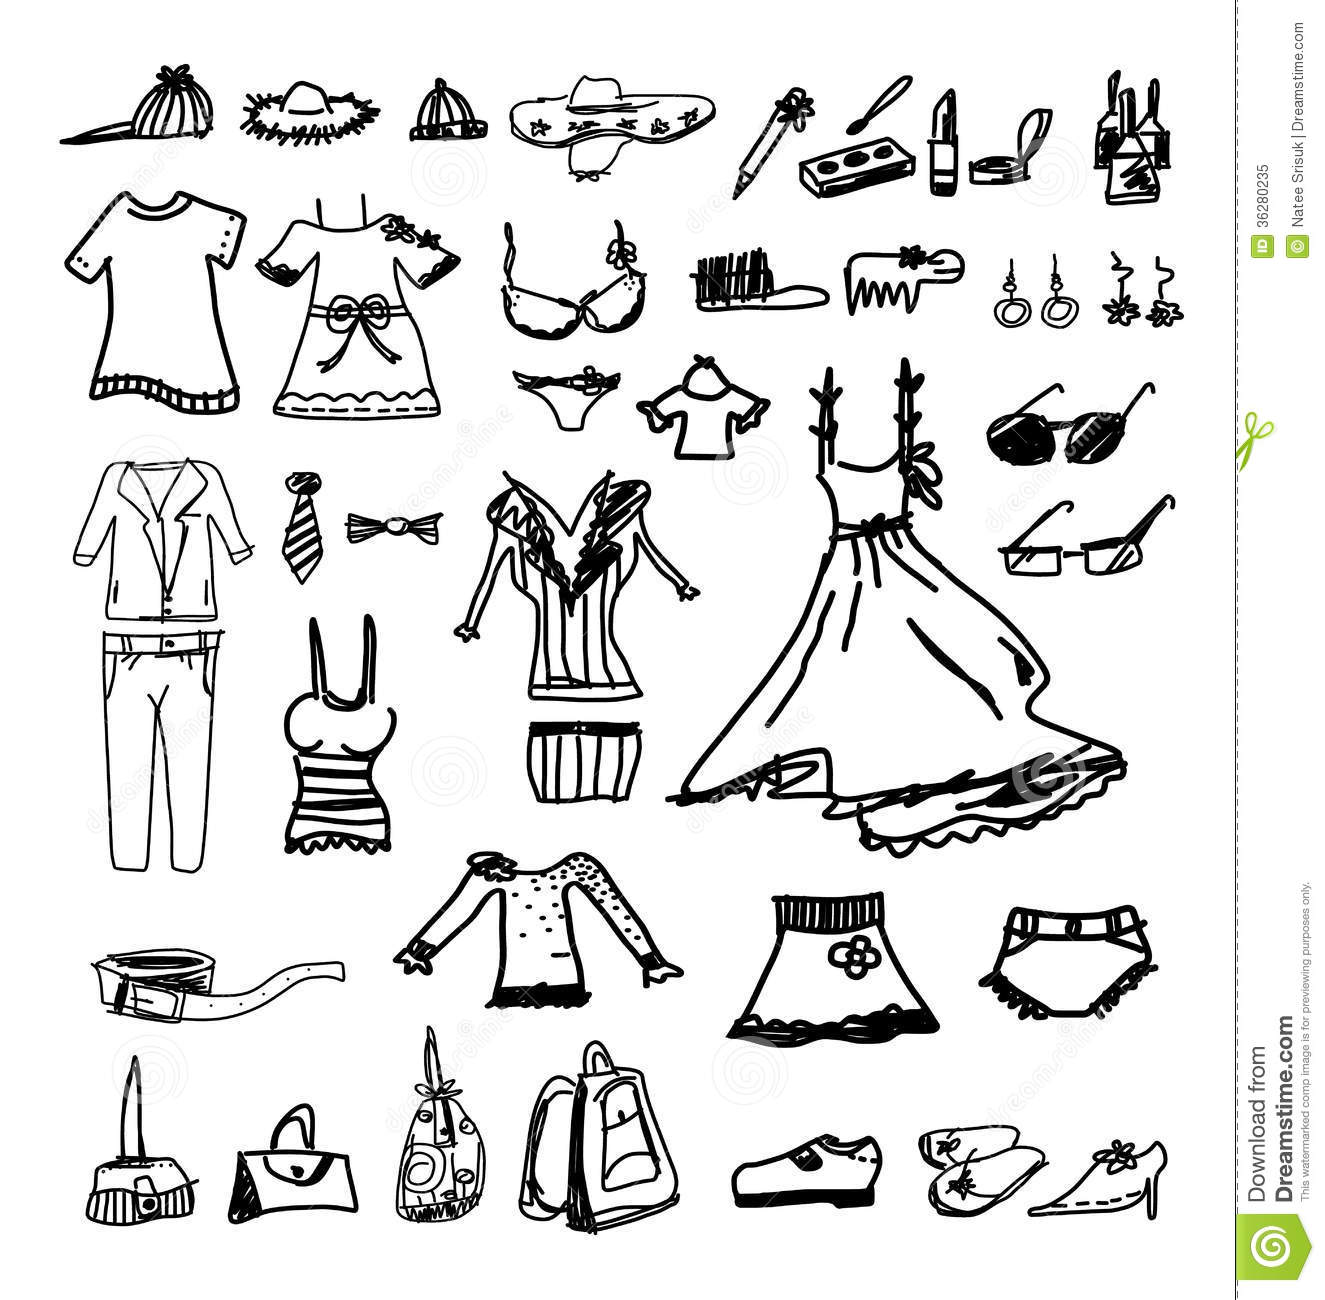 Fashion Icons Sketch Royalty Free Stock Photo Image 36280235